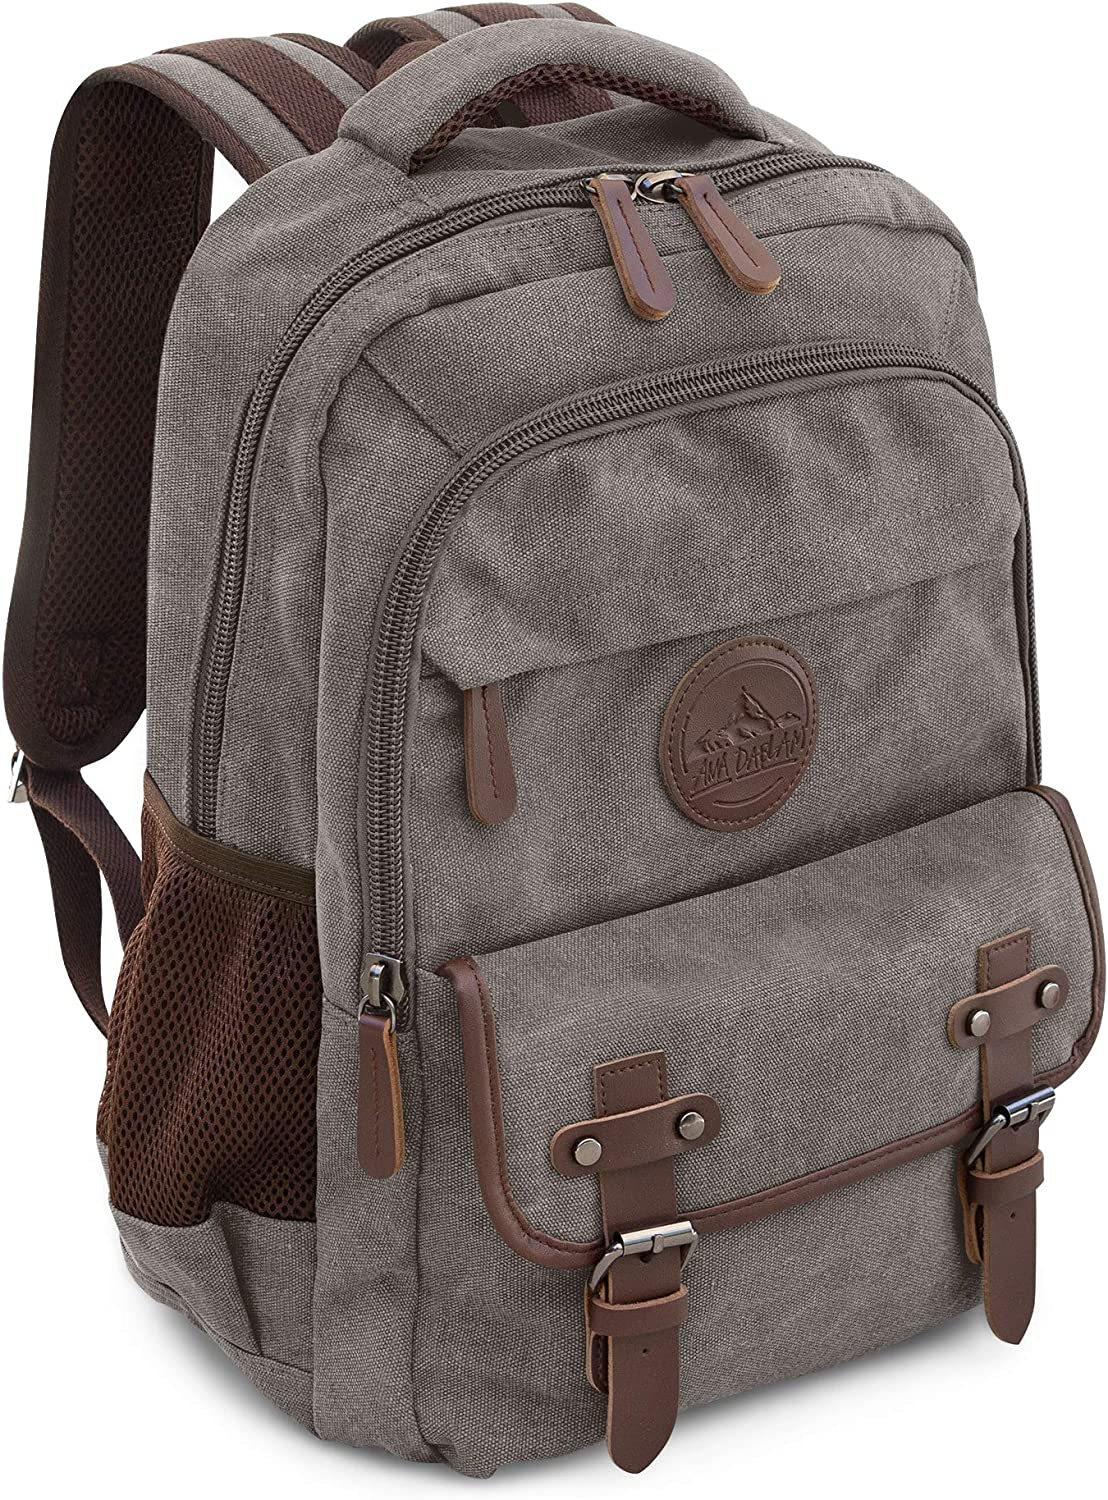 Laptop Backpack for School Hiking Work w/ 15in Sleeve Many Pockets & Padding   Anti Theft